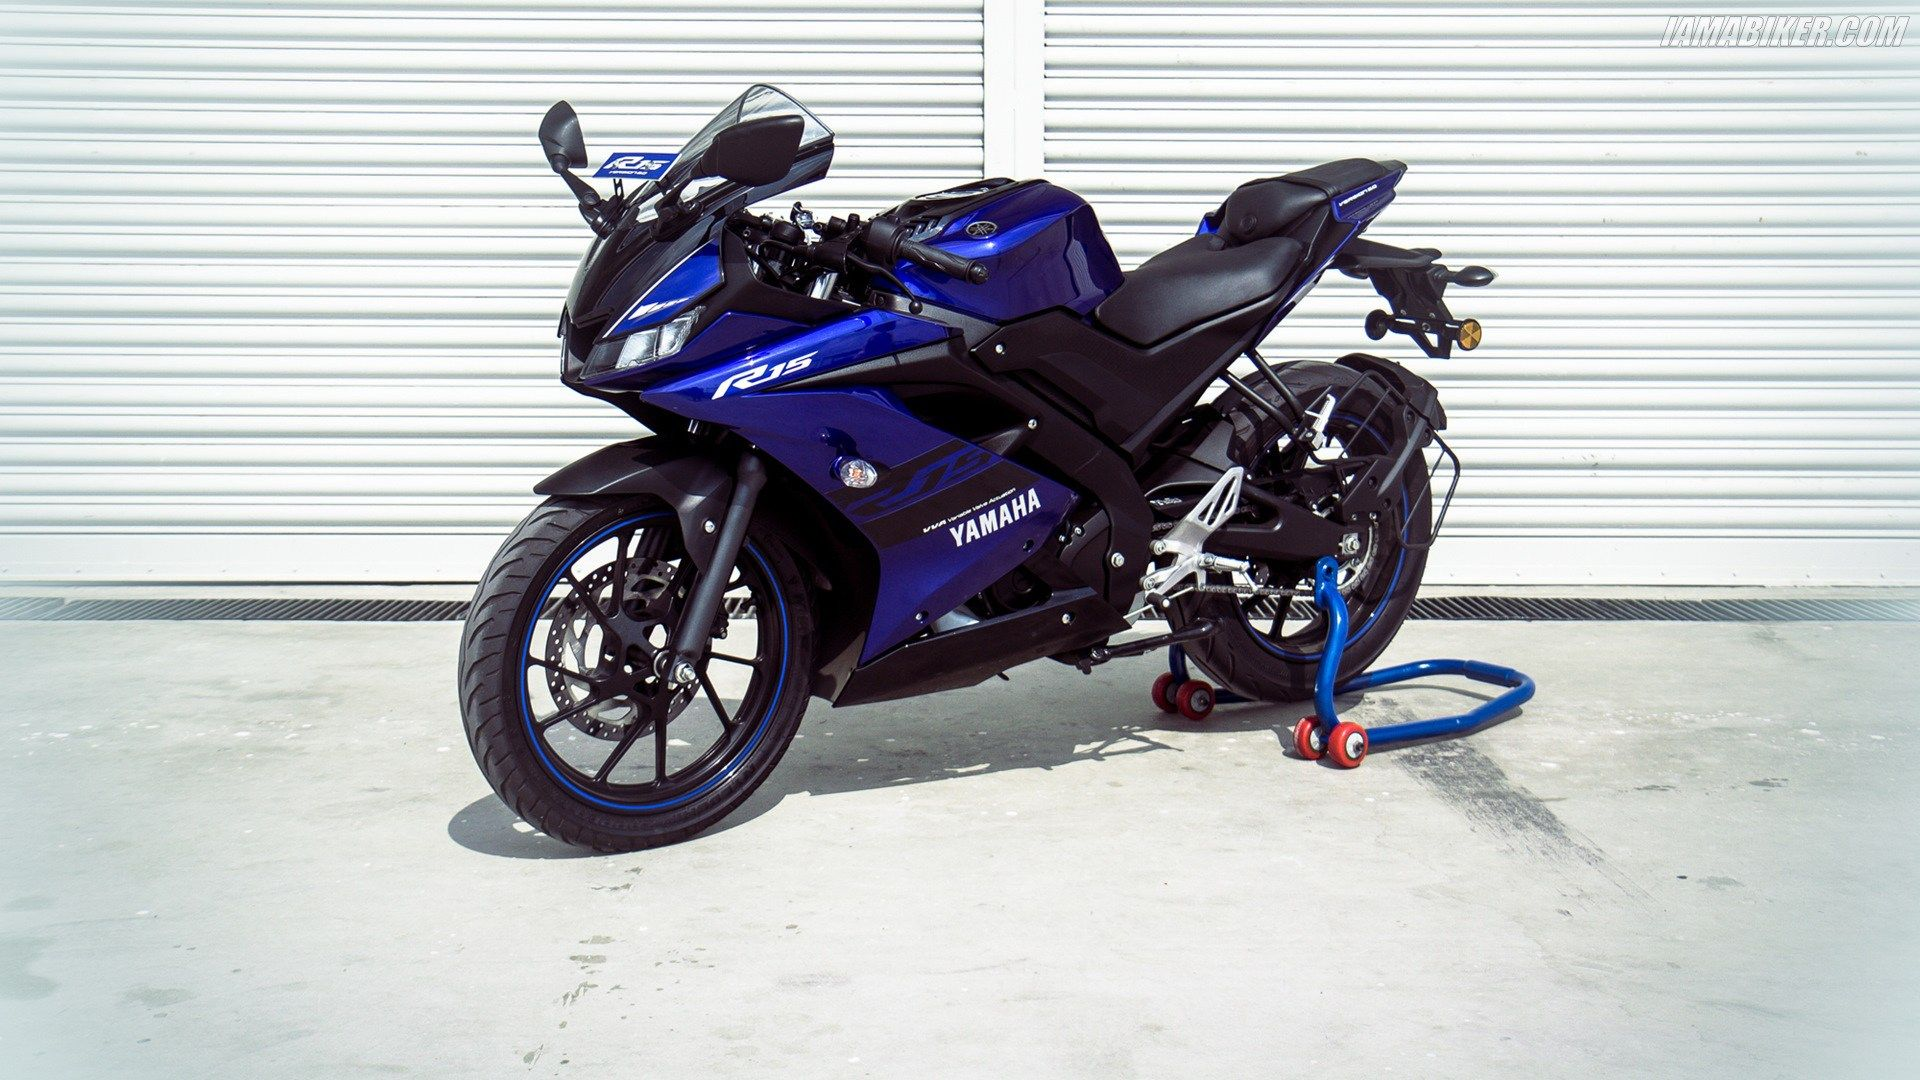 Yamaha R15 V3 Hd Wallpapers With Images Hd Wallpaper Yamaha